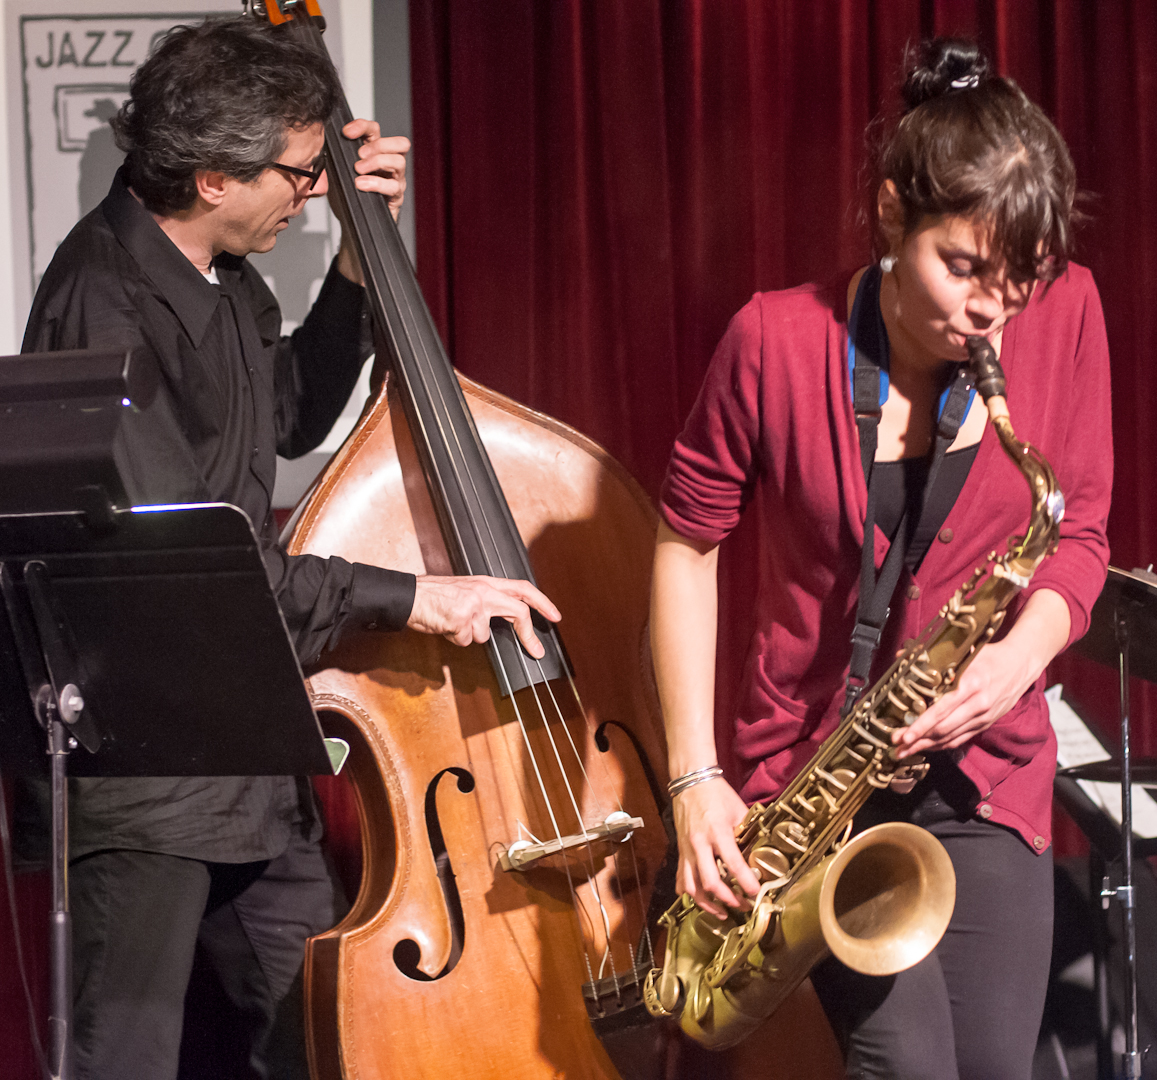 Joseph Lepore and Melissa Aldana with Quartet at the Jazz Gallery